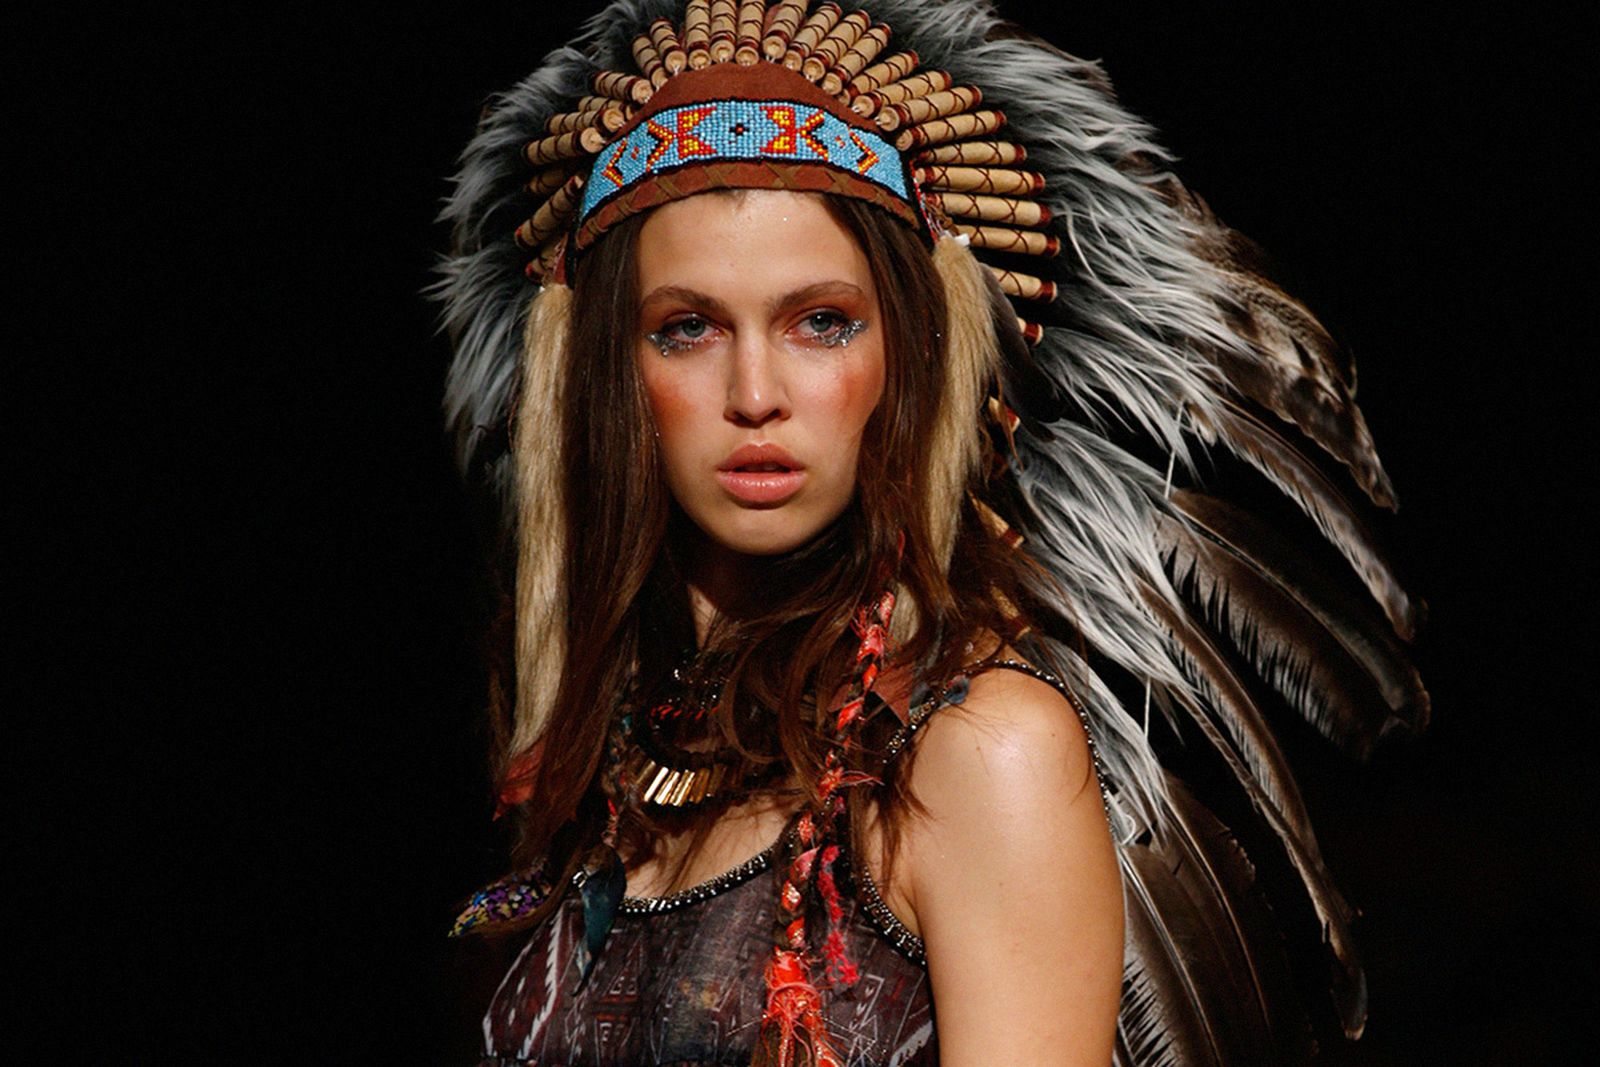 native american cultural appropriation Main Pharrell Williams coachella gwen stefani